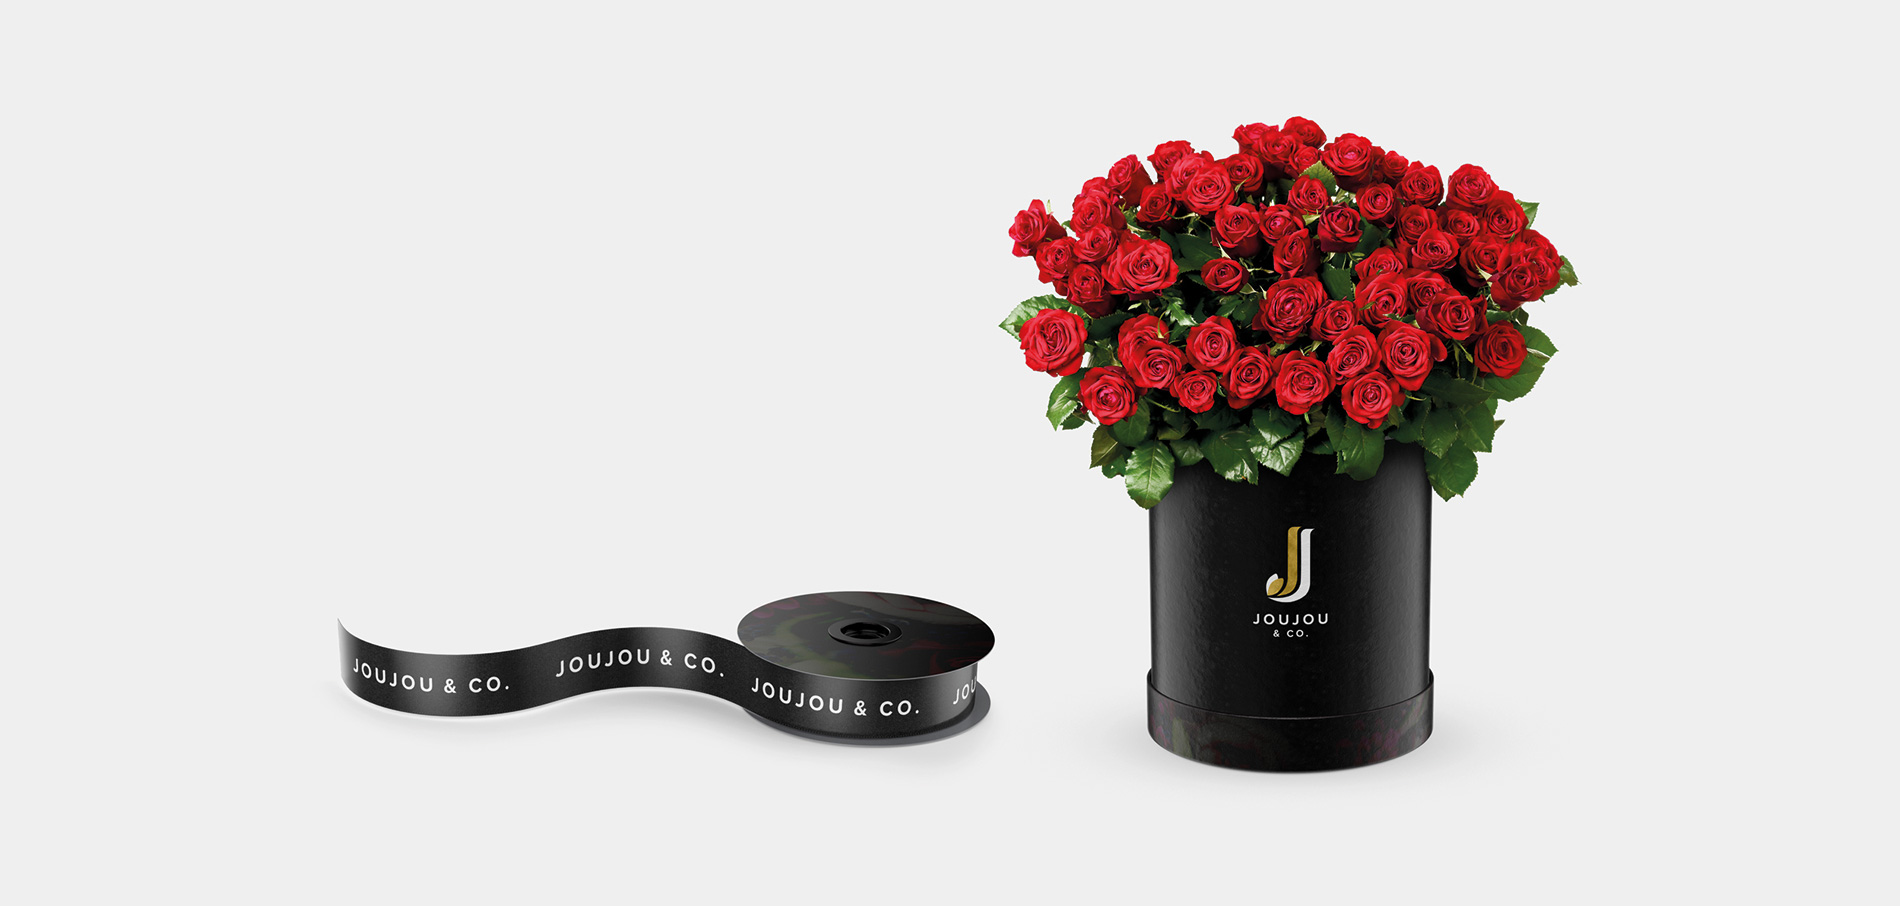 joujou and co rose box